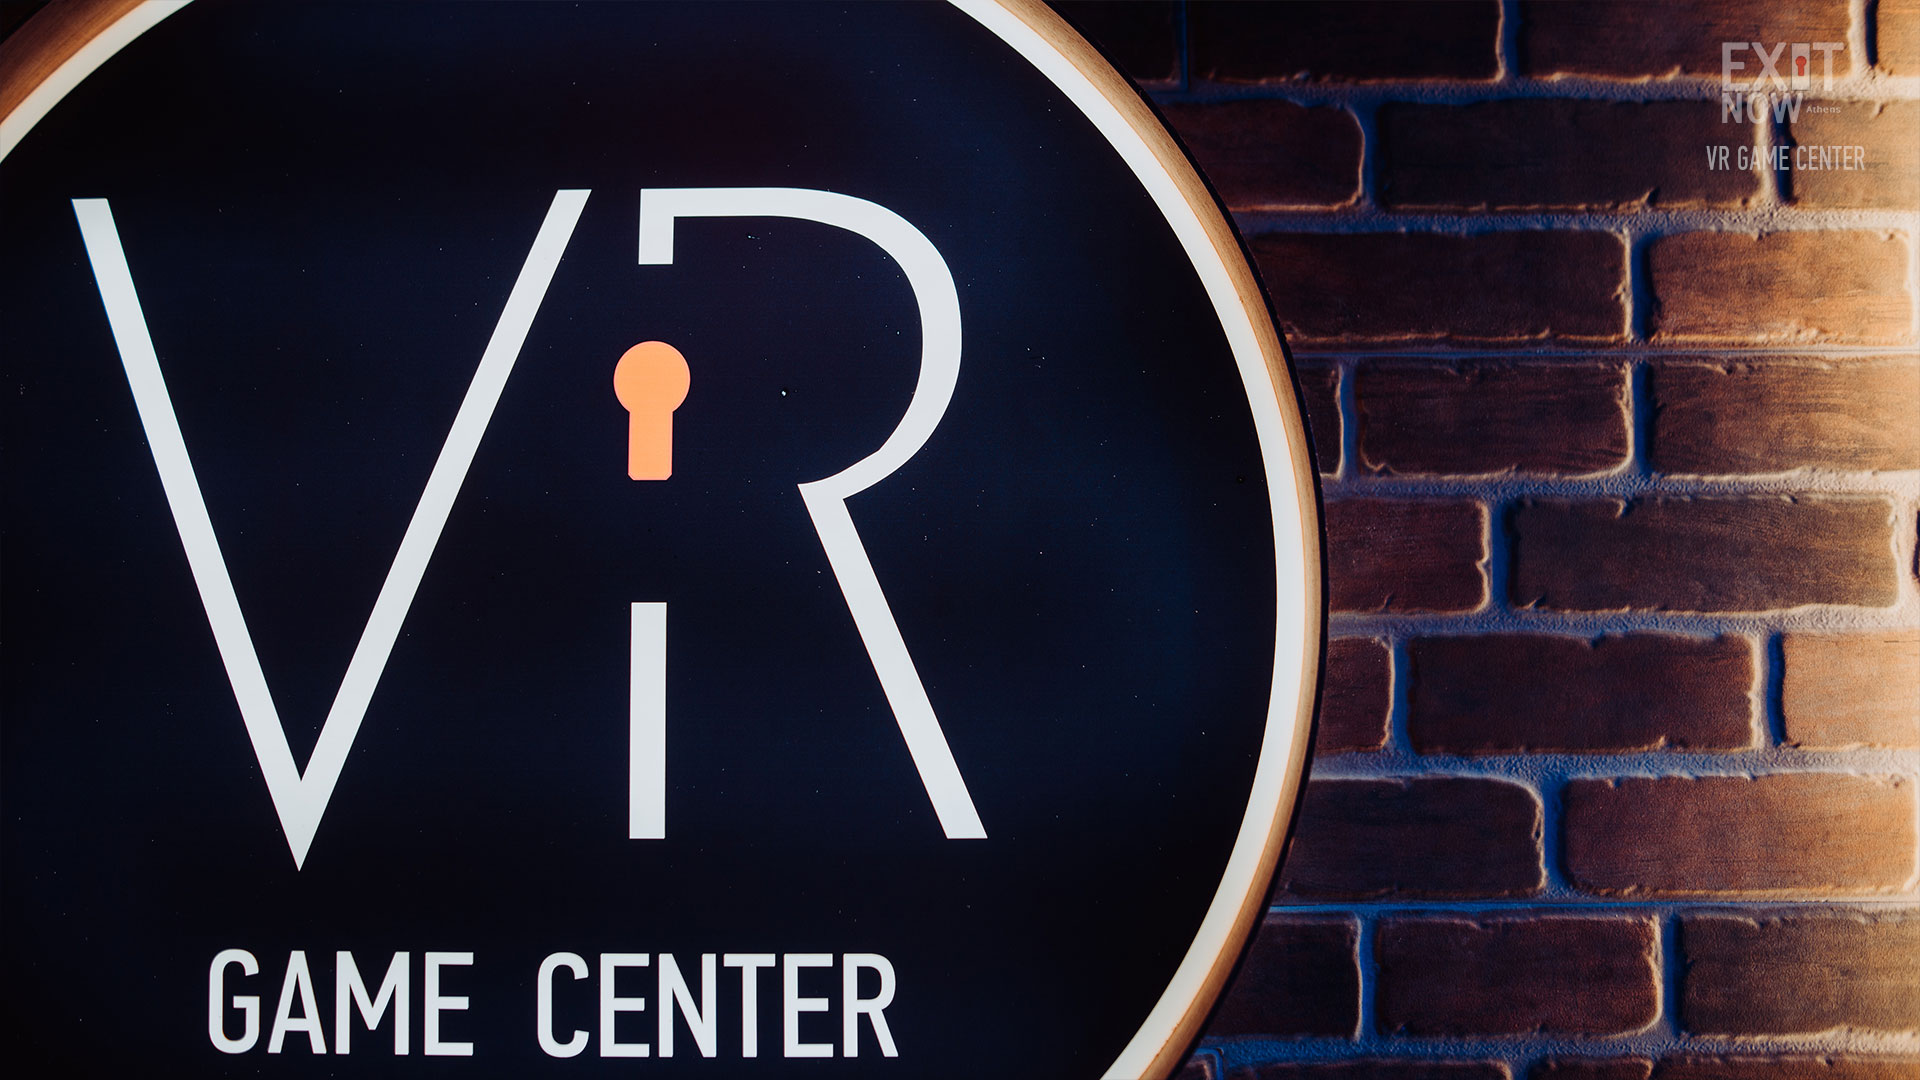 VR GAME CENTER EXIT NOW 2 | EXIT NOW | Live Game Experience | Escape Room | Services